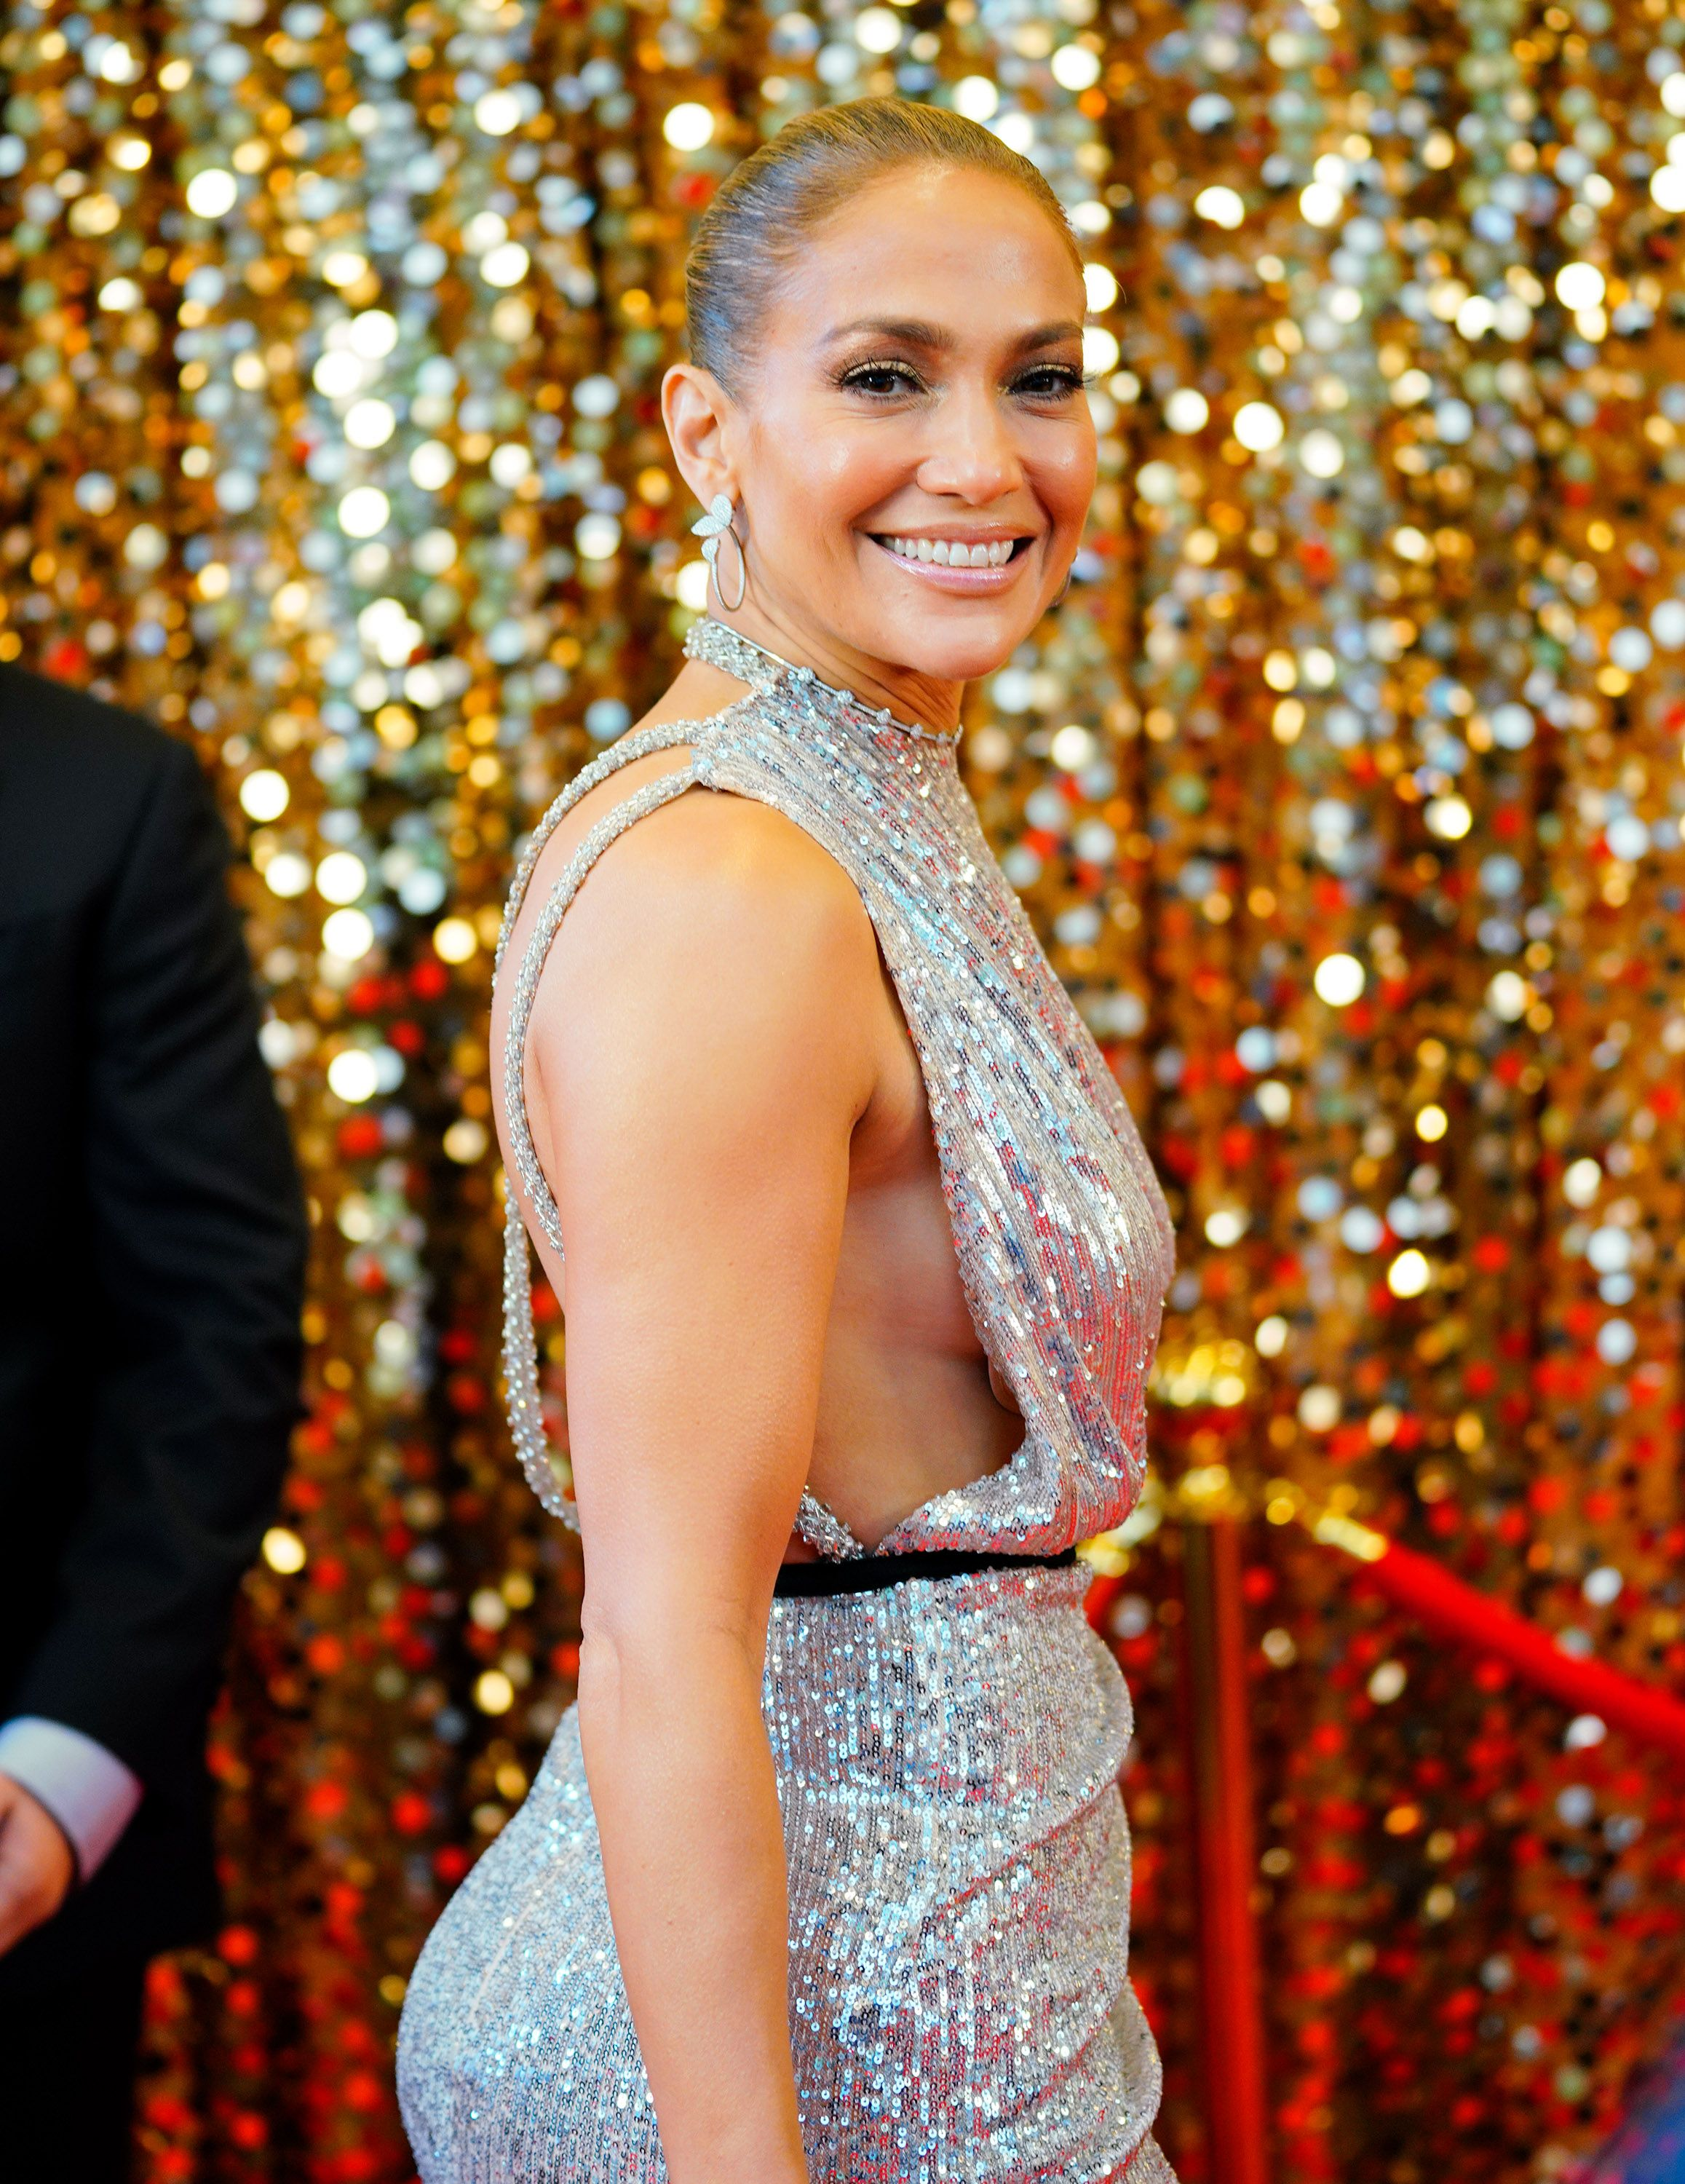 Jennifer Lopez Wore an Over-the-Top Sequined Slit Dress to Work